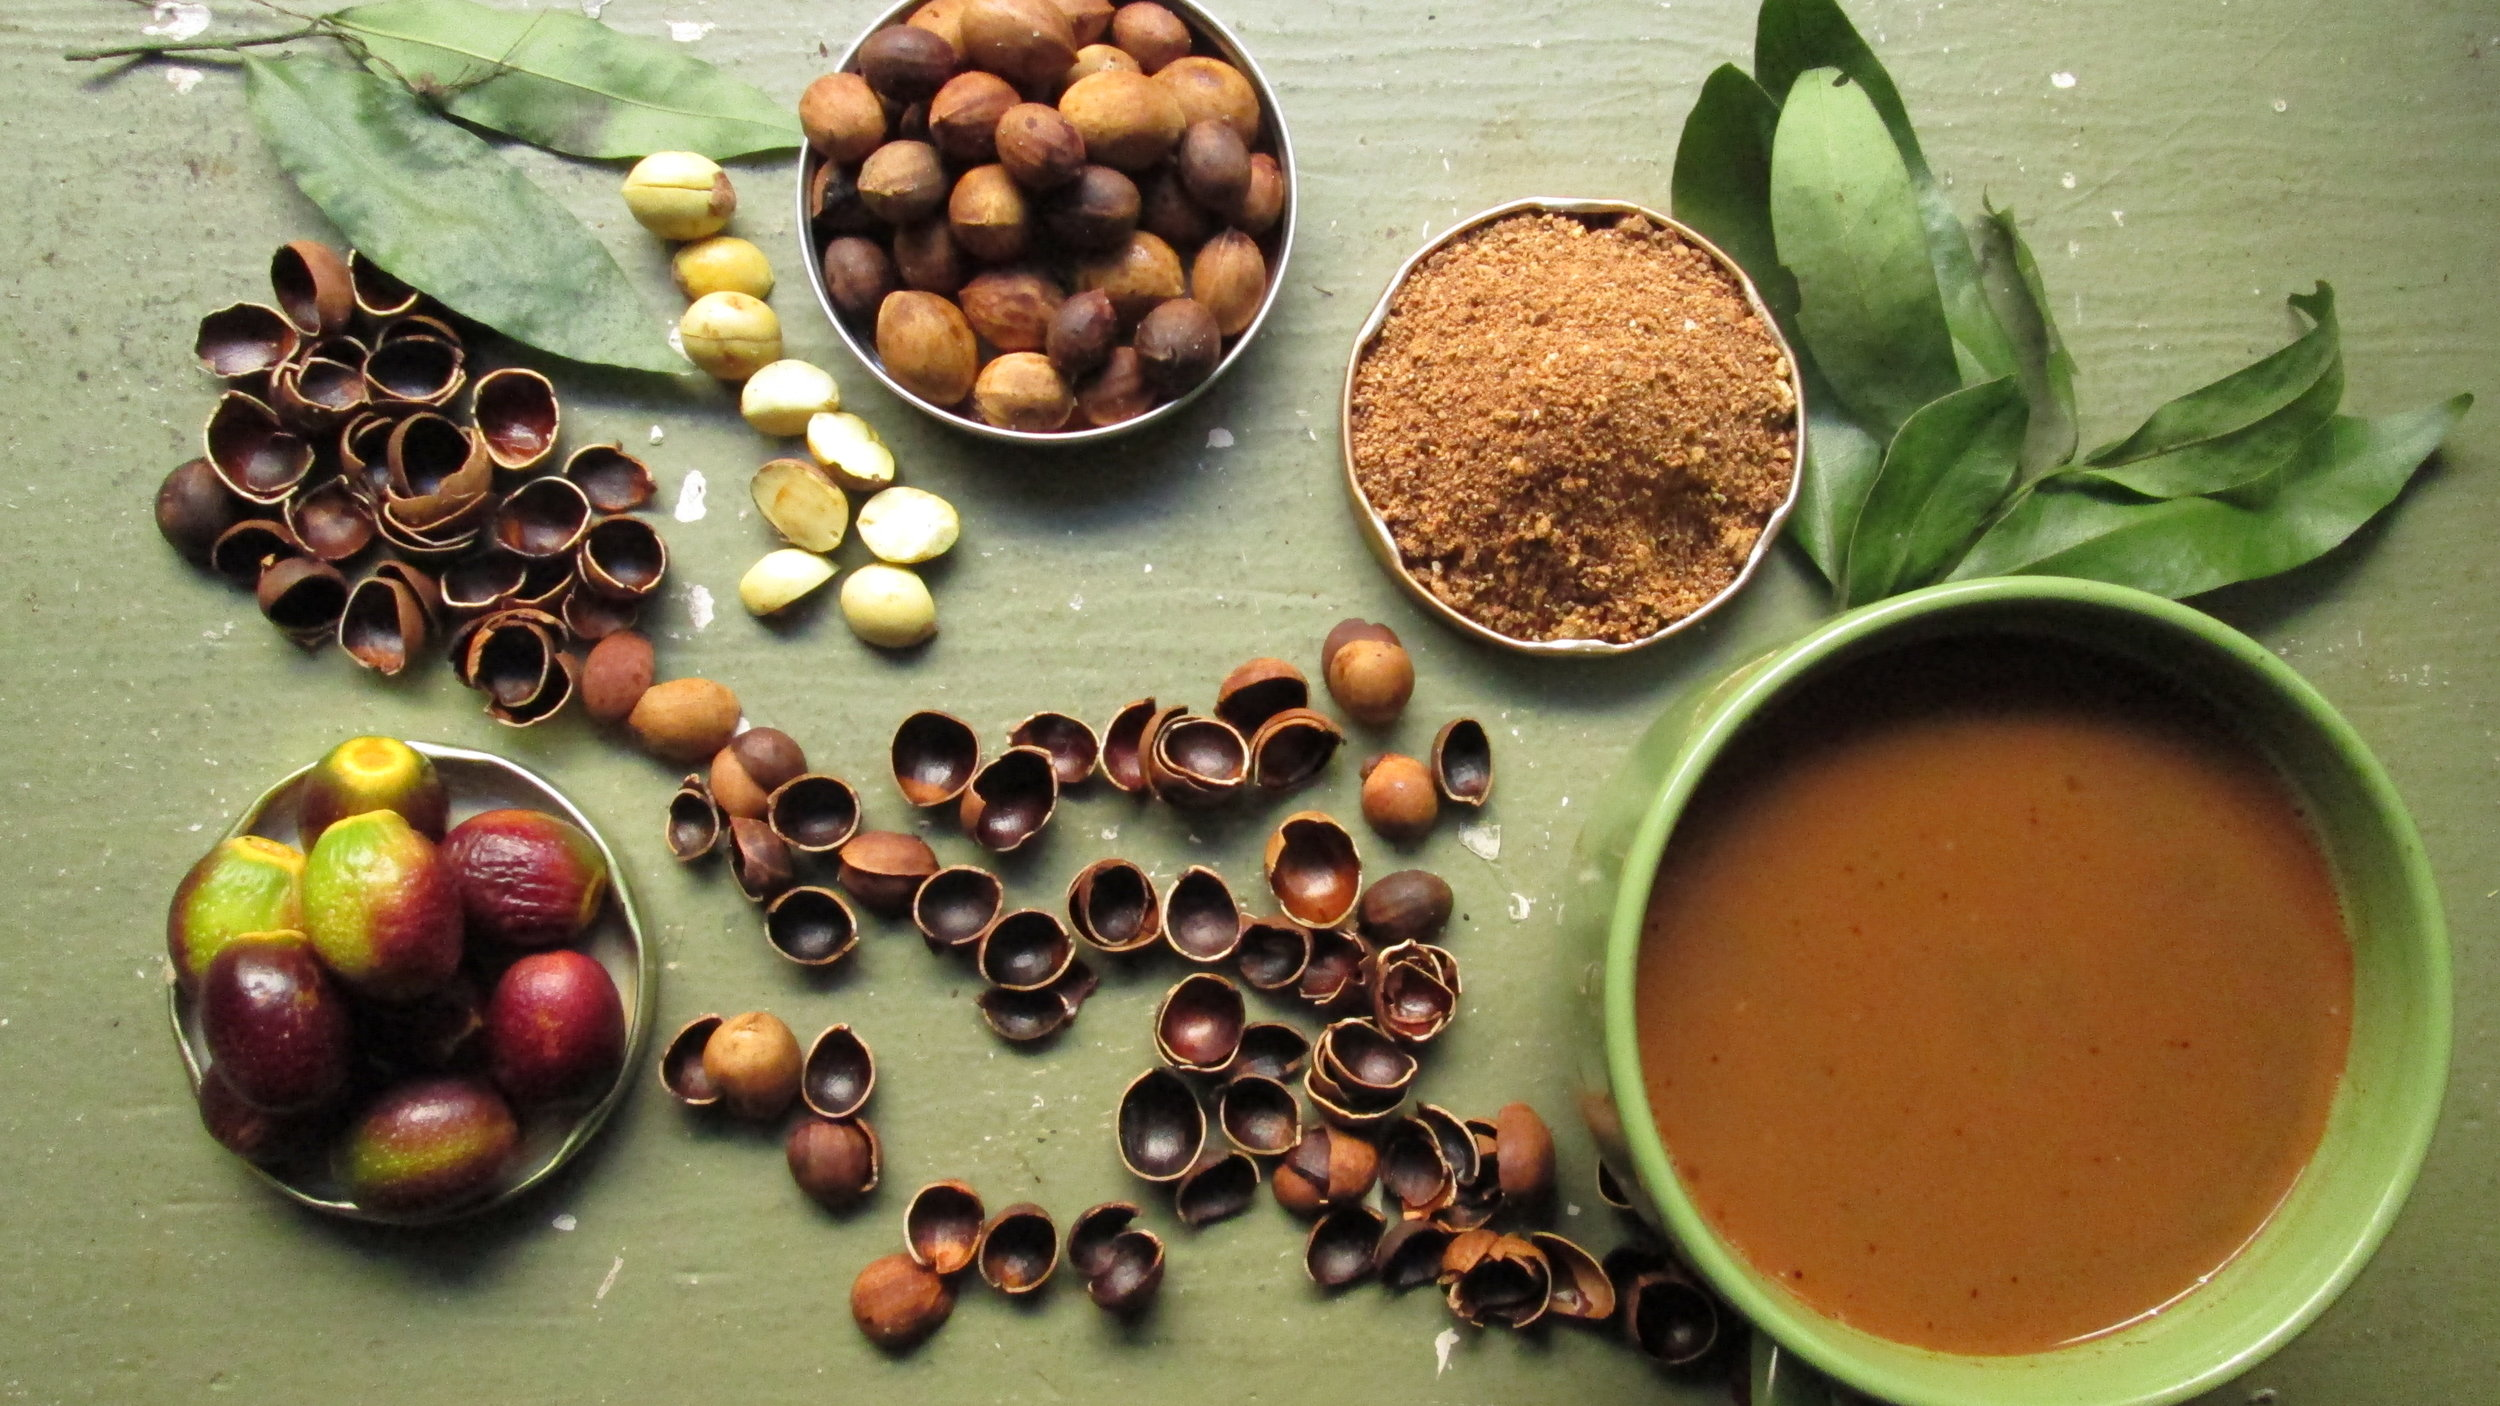 Clockwise starting from the lower left: ripe bay fruits; shelled hulls of bay nut; unroasted, shelled bay nuts; bay leaves; roasted bay nuts; bay nut powder; drink made by steeping bay nut powder in hot water. (Photo by Emily Moskal)  http://baynature.org/article/how-to-forage-and-prepare-bay-nuts/